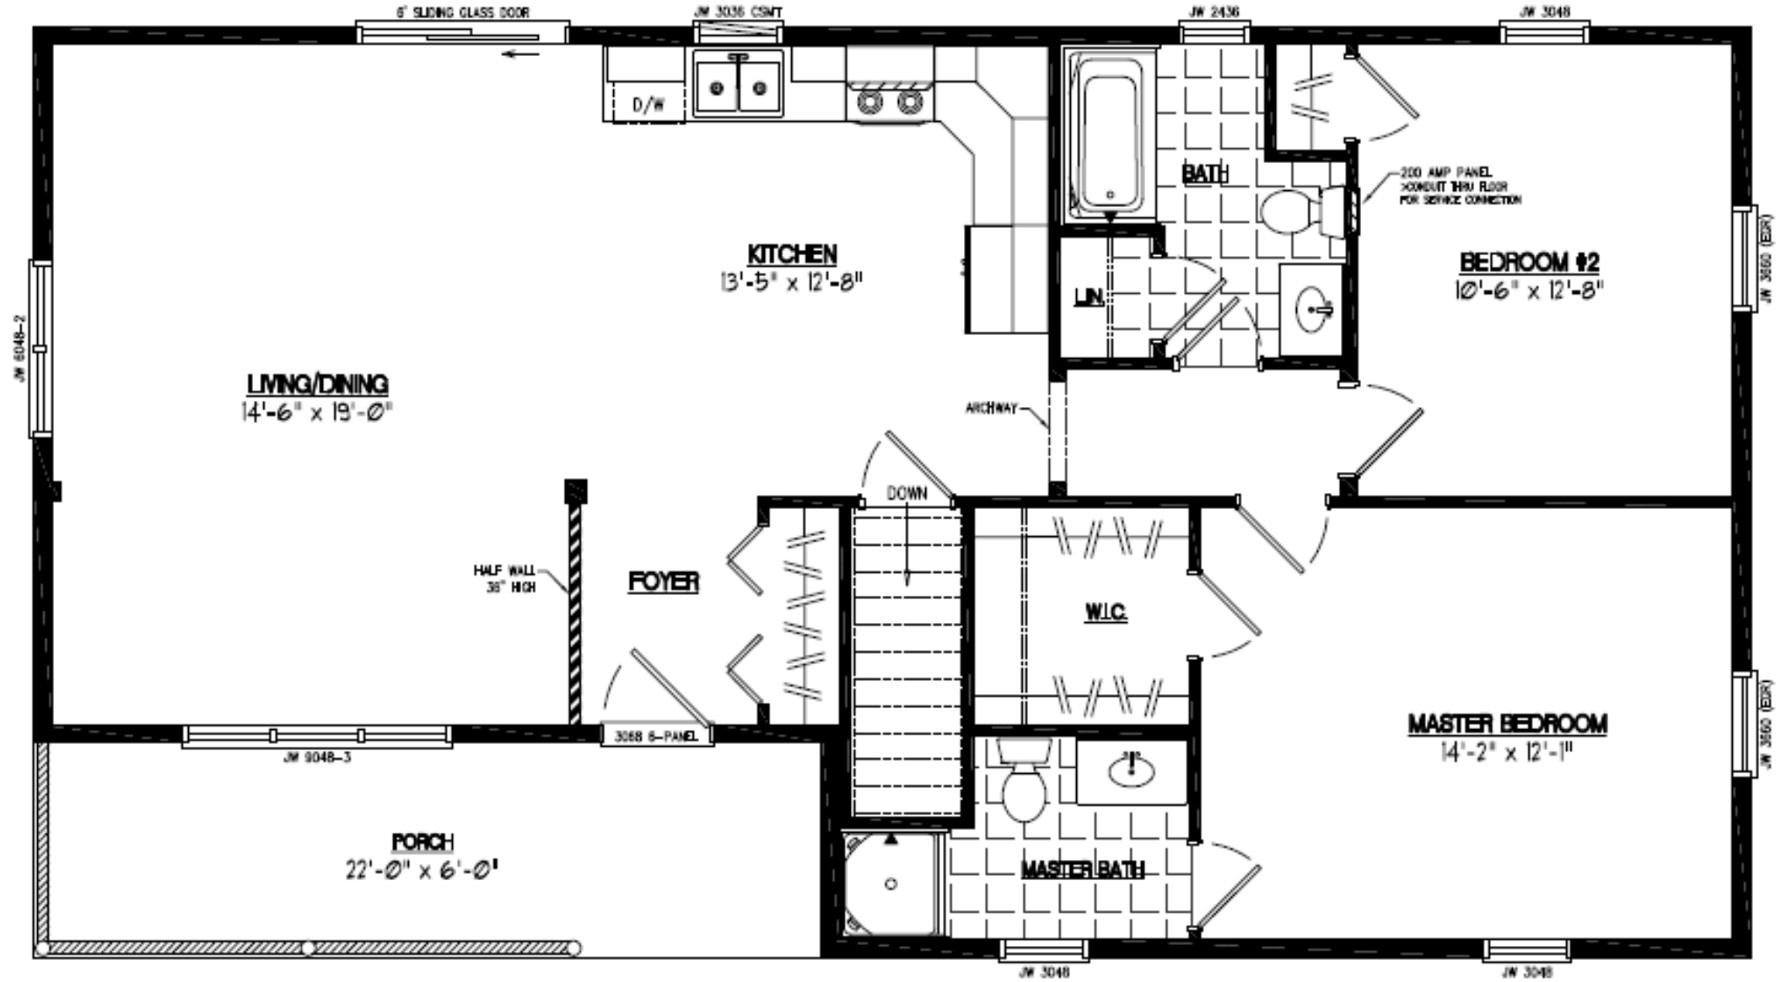 100 huf haus floor plans huf haus al cinema youtube for Haus plan